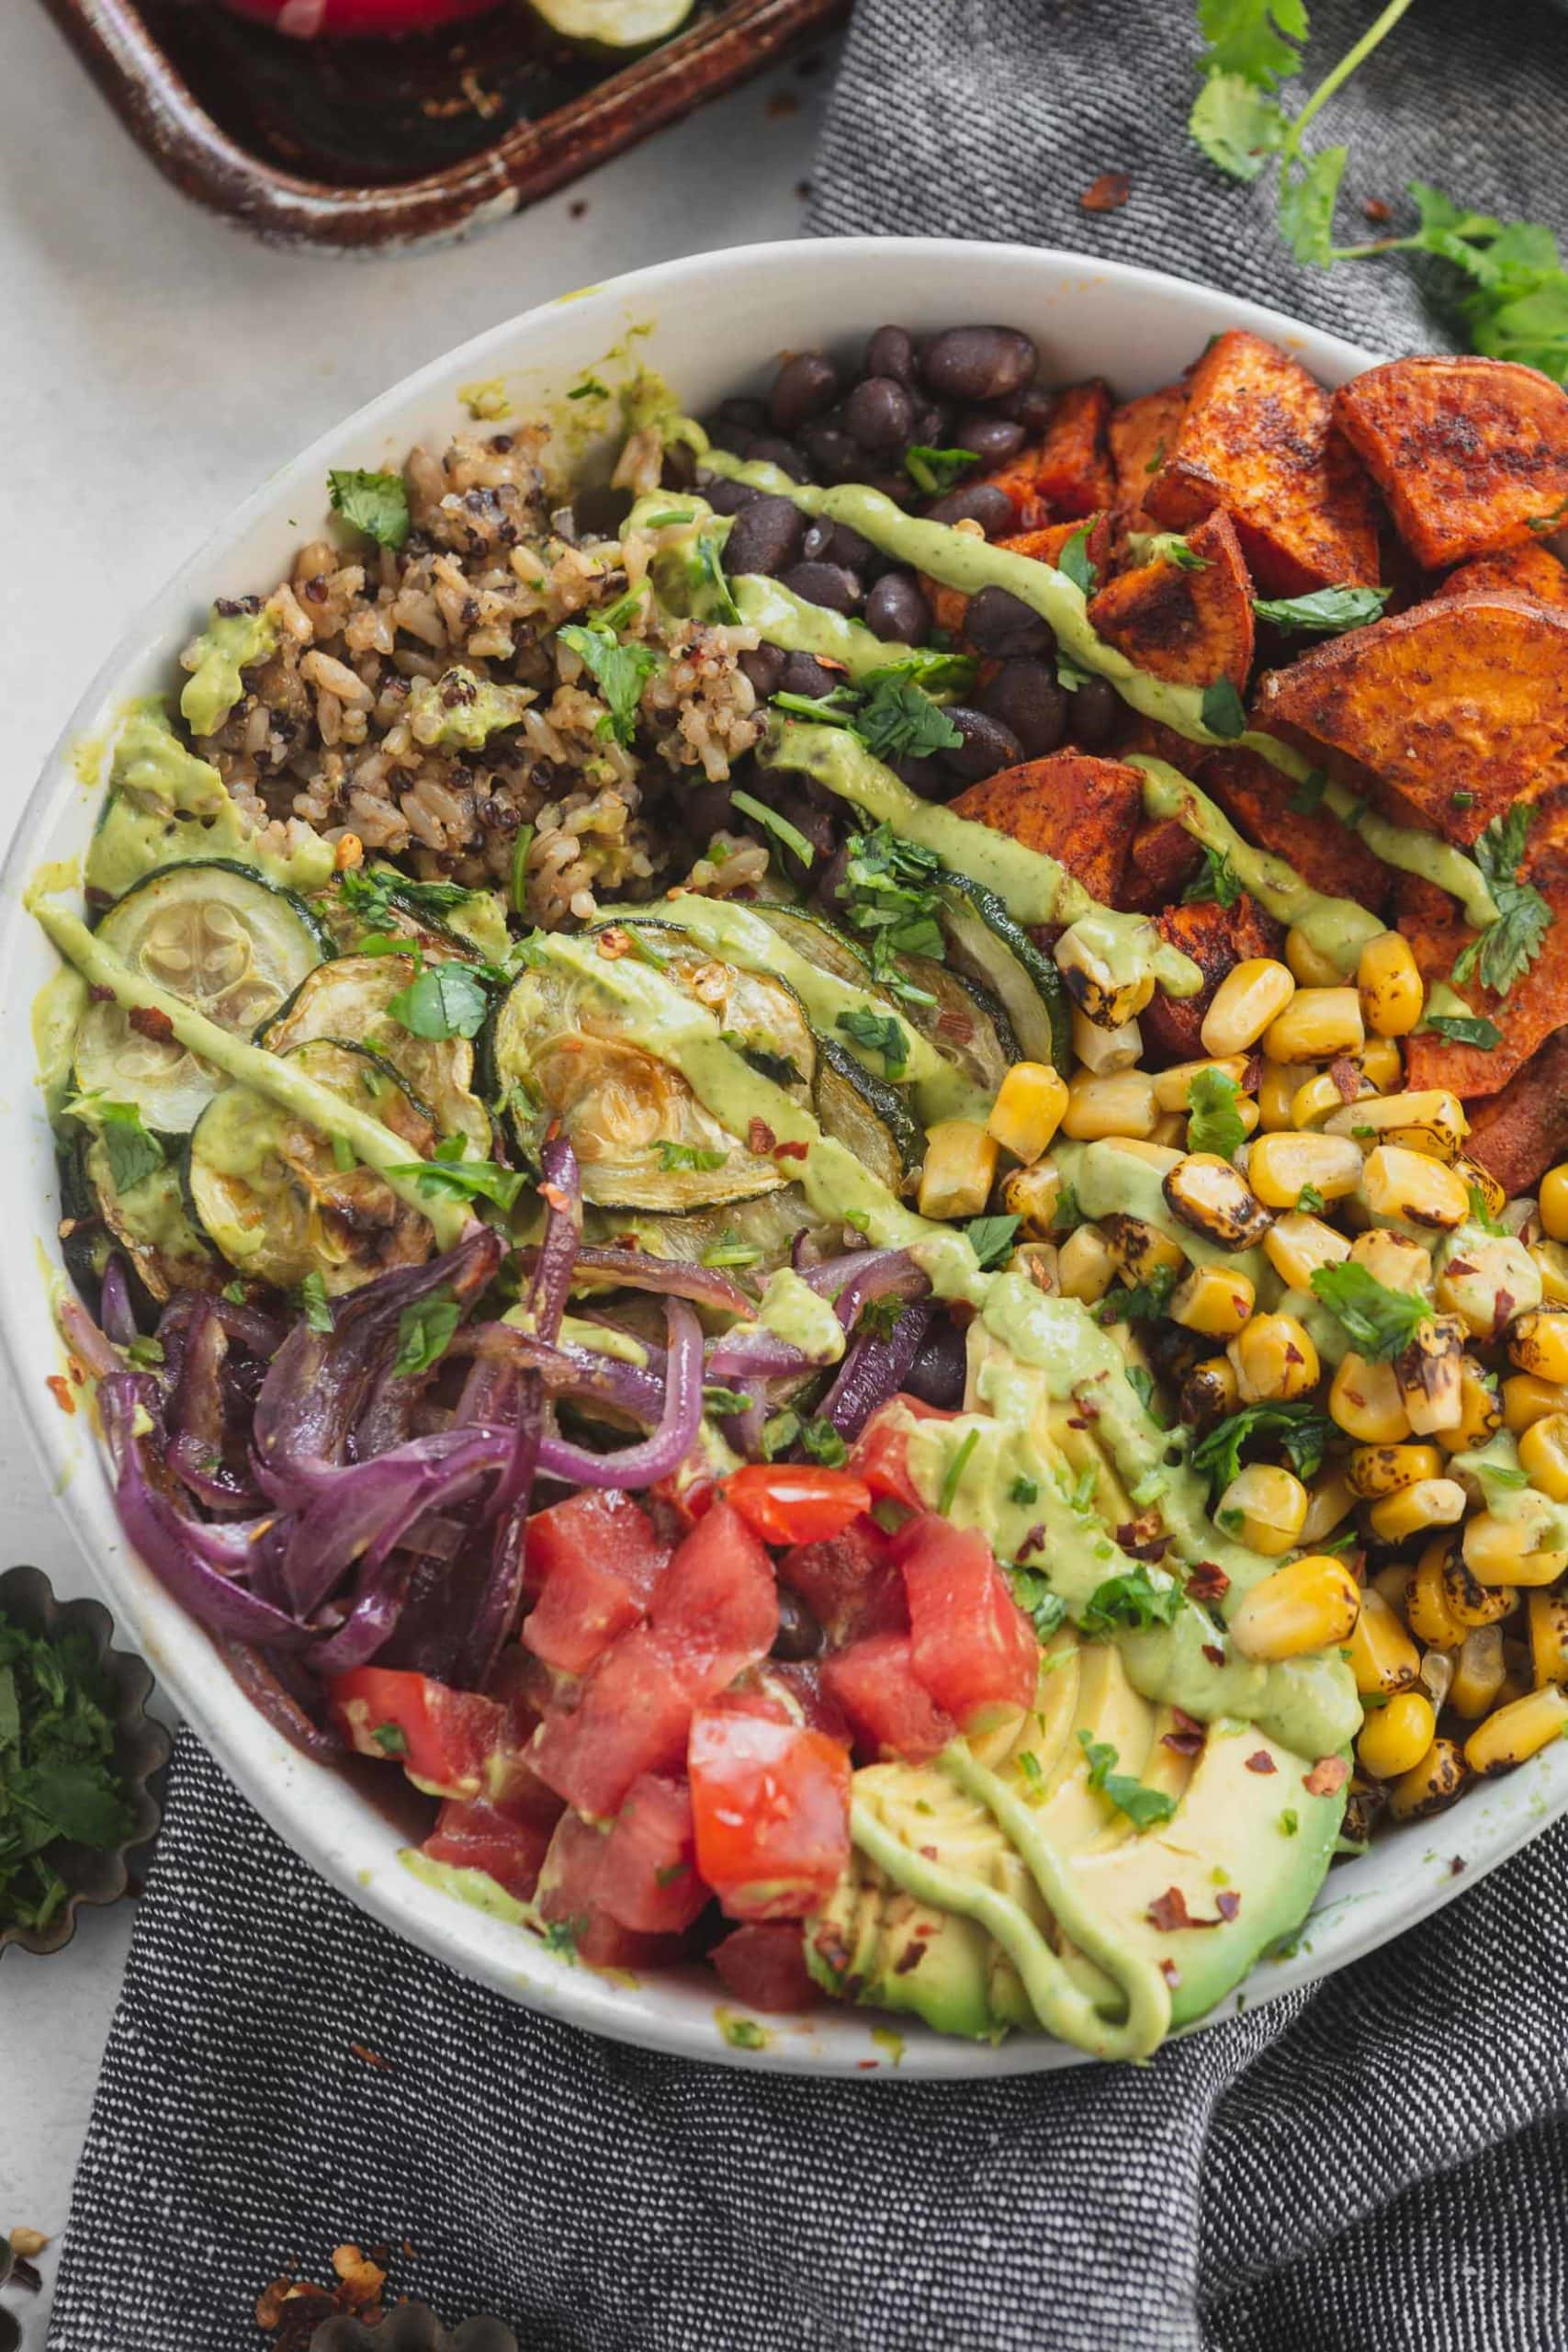 A vegan burrito bowl filled with brown rice, quinoa, roasted corn, tomatoes, black beans, red onions, zucchini and sweet potatoes.